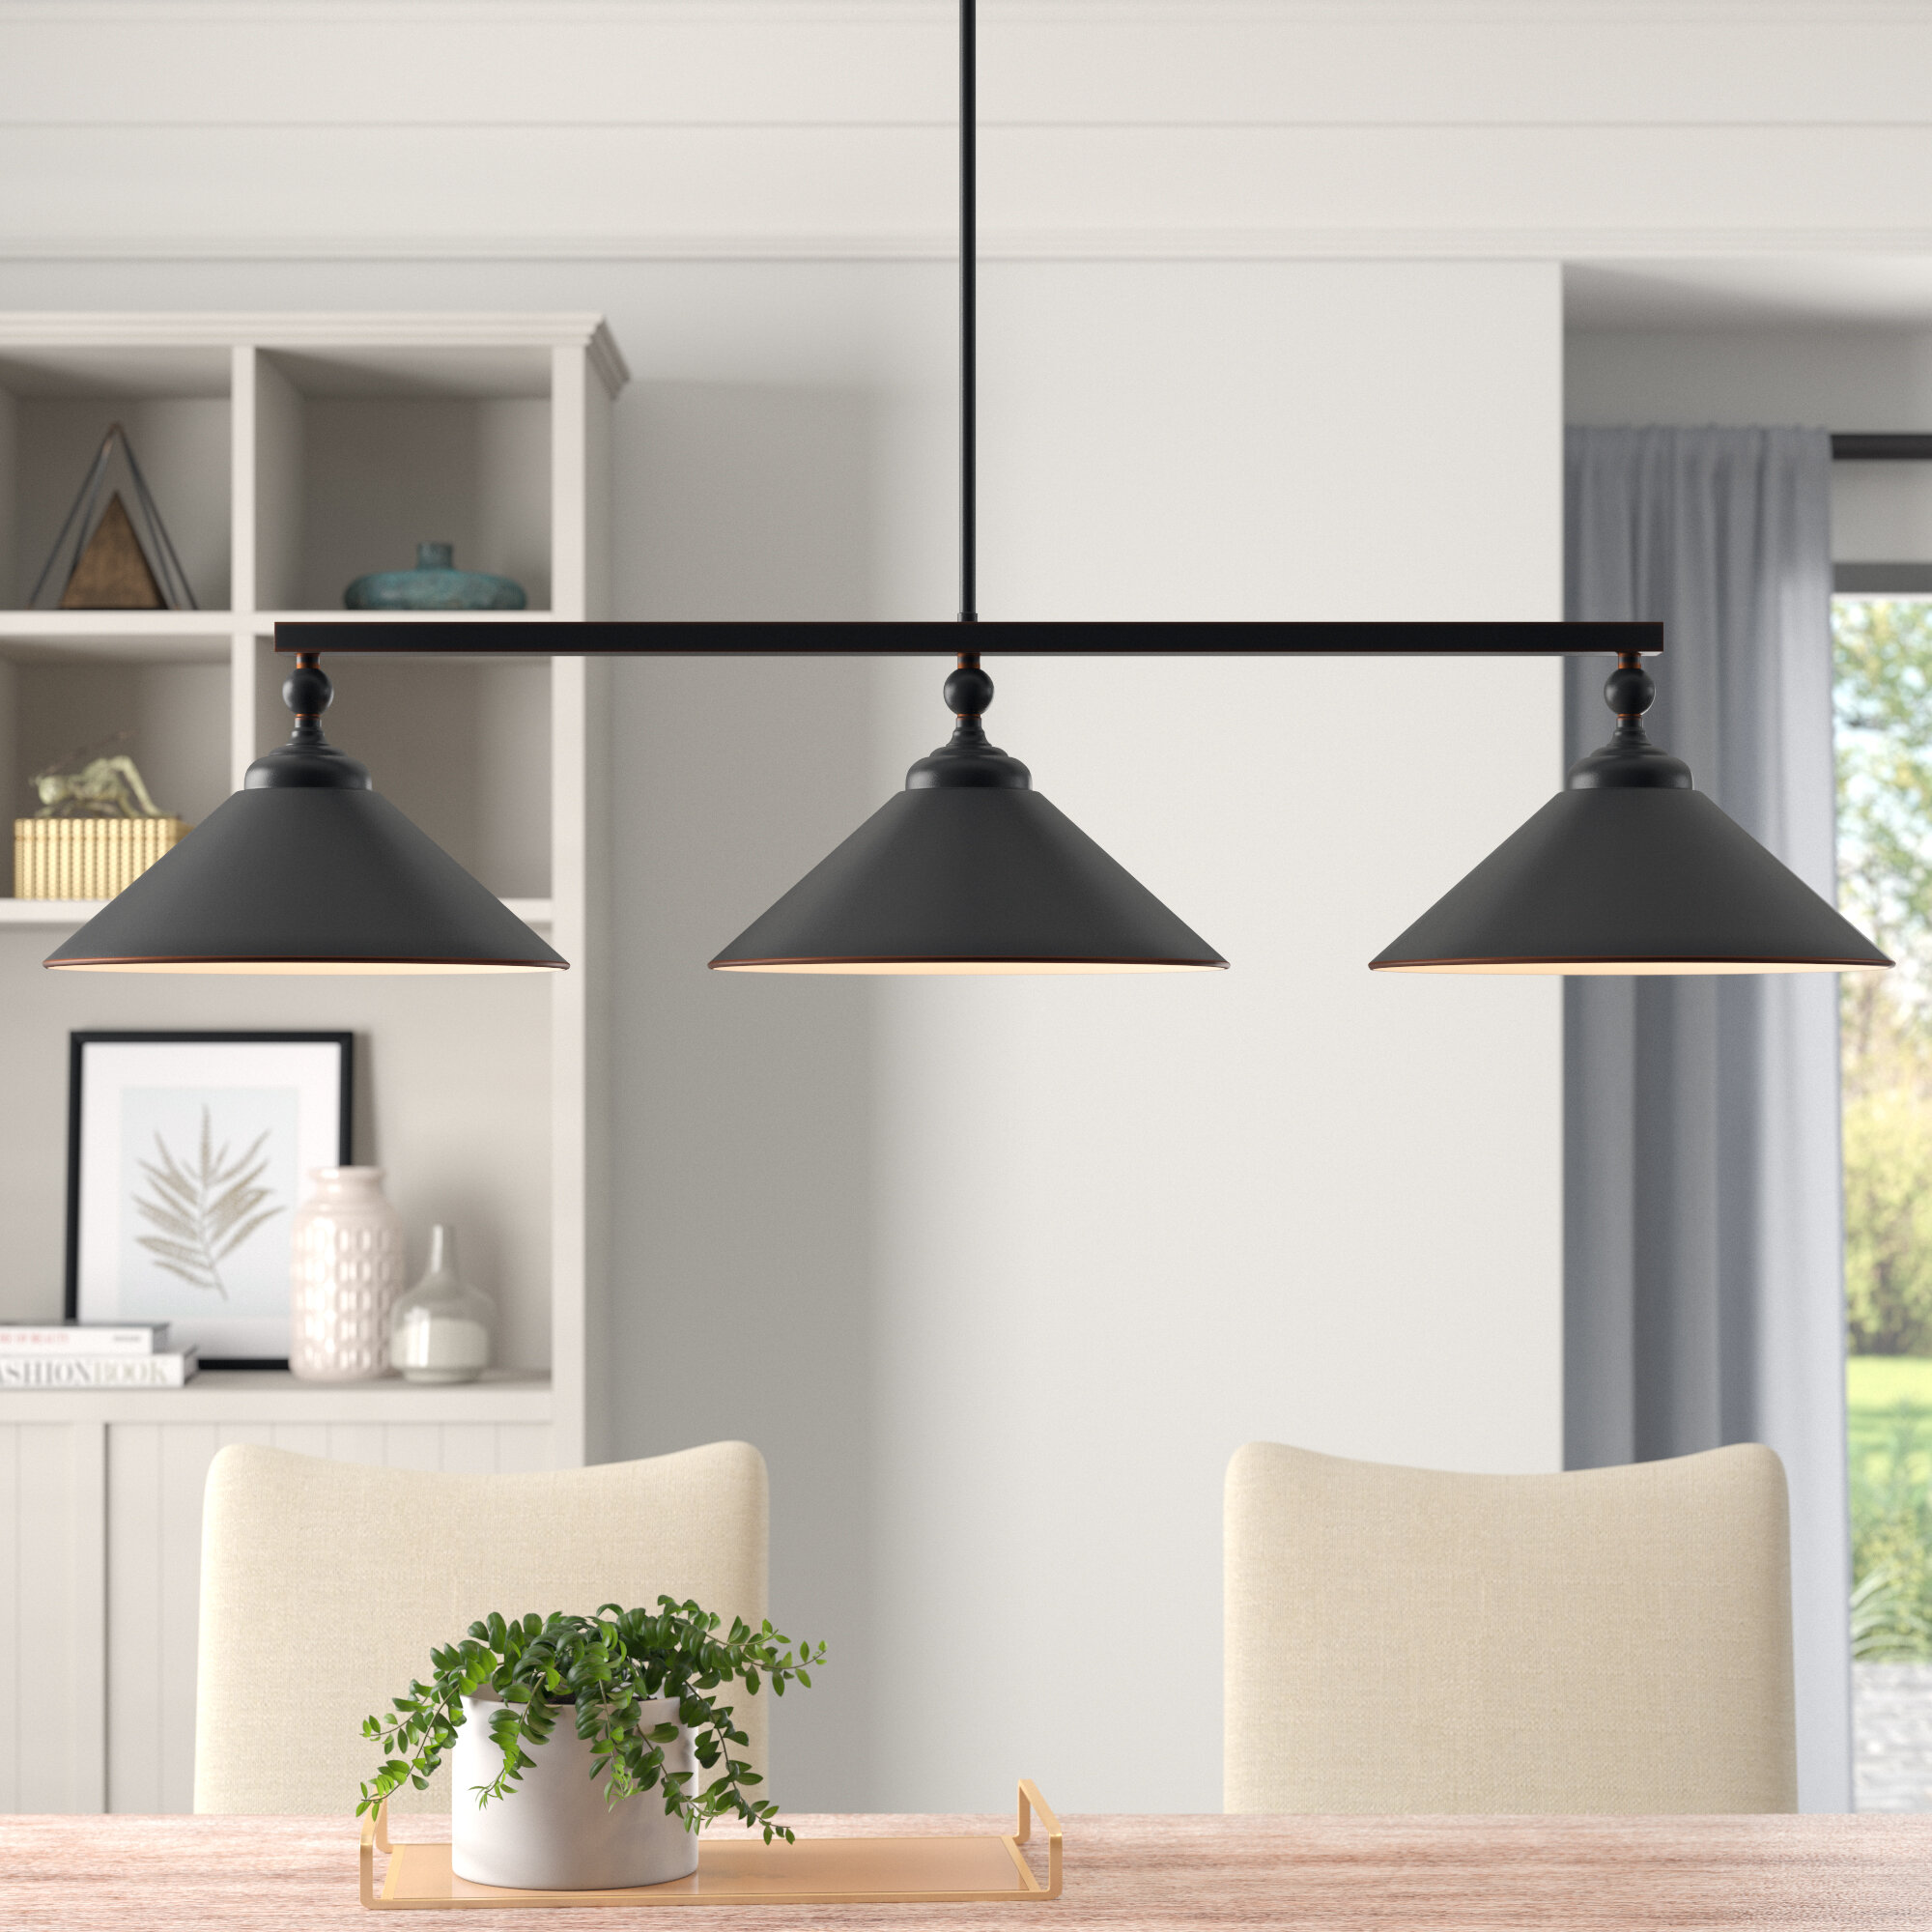 3 Light Kitchen Island Pendant Lighting You Ll Love In 2021 Wayfair